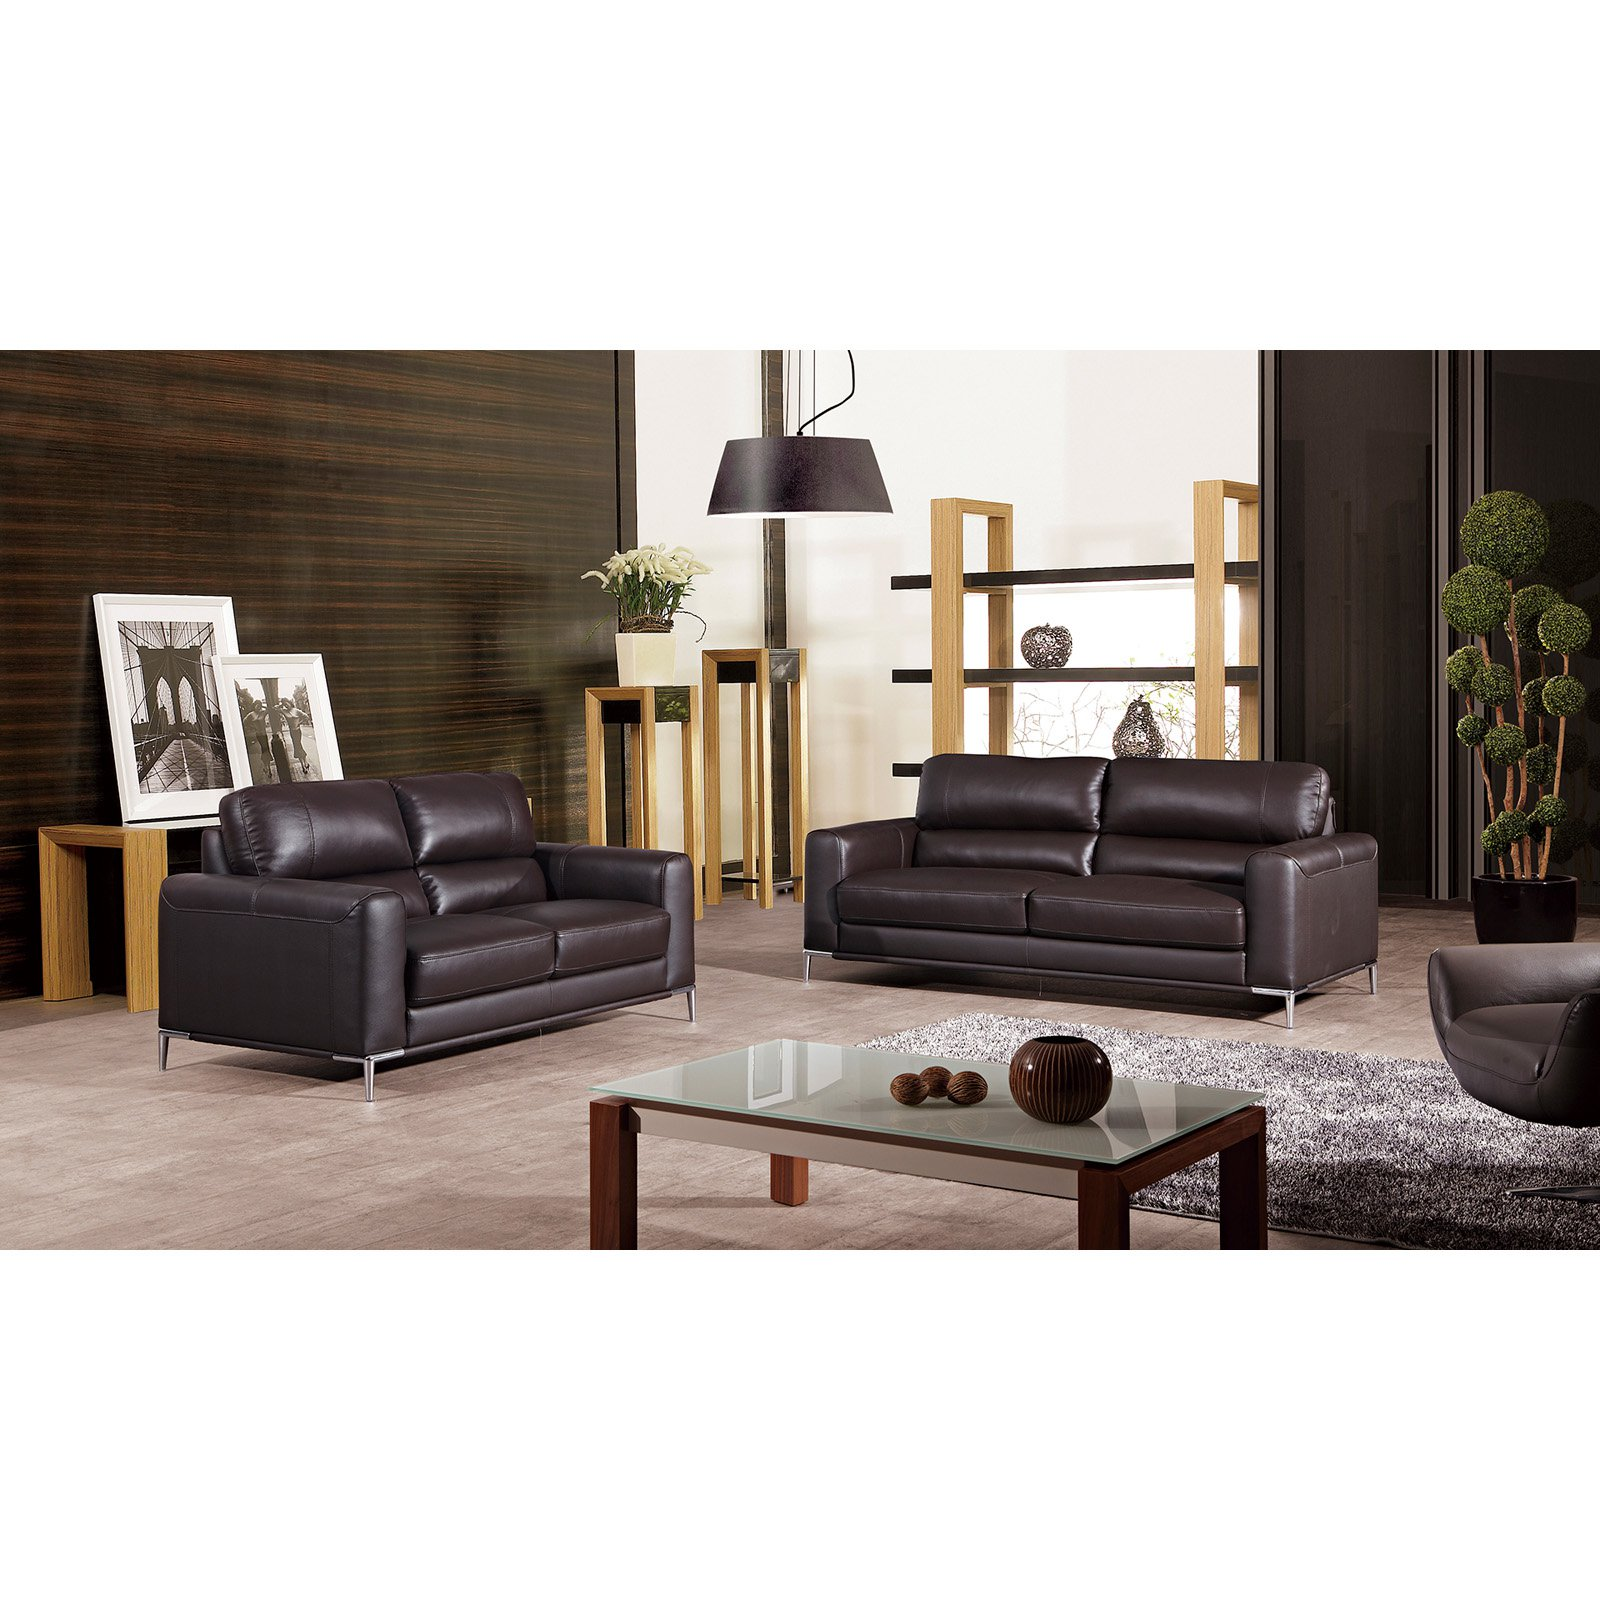 Where Is American Eagle Furniture Made: American Eagle Furniture Rodeo 2 Piece Sofa And Loveseat